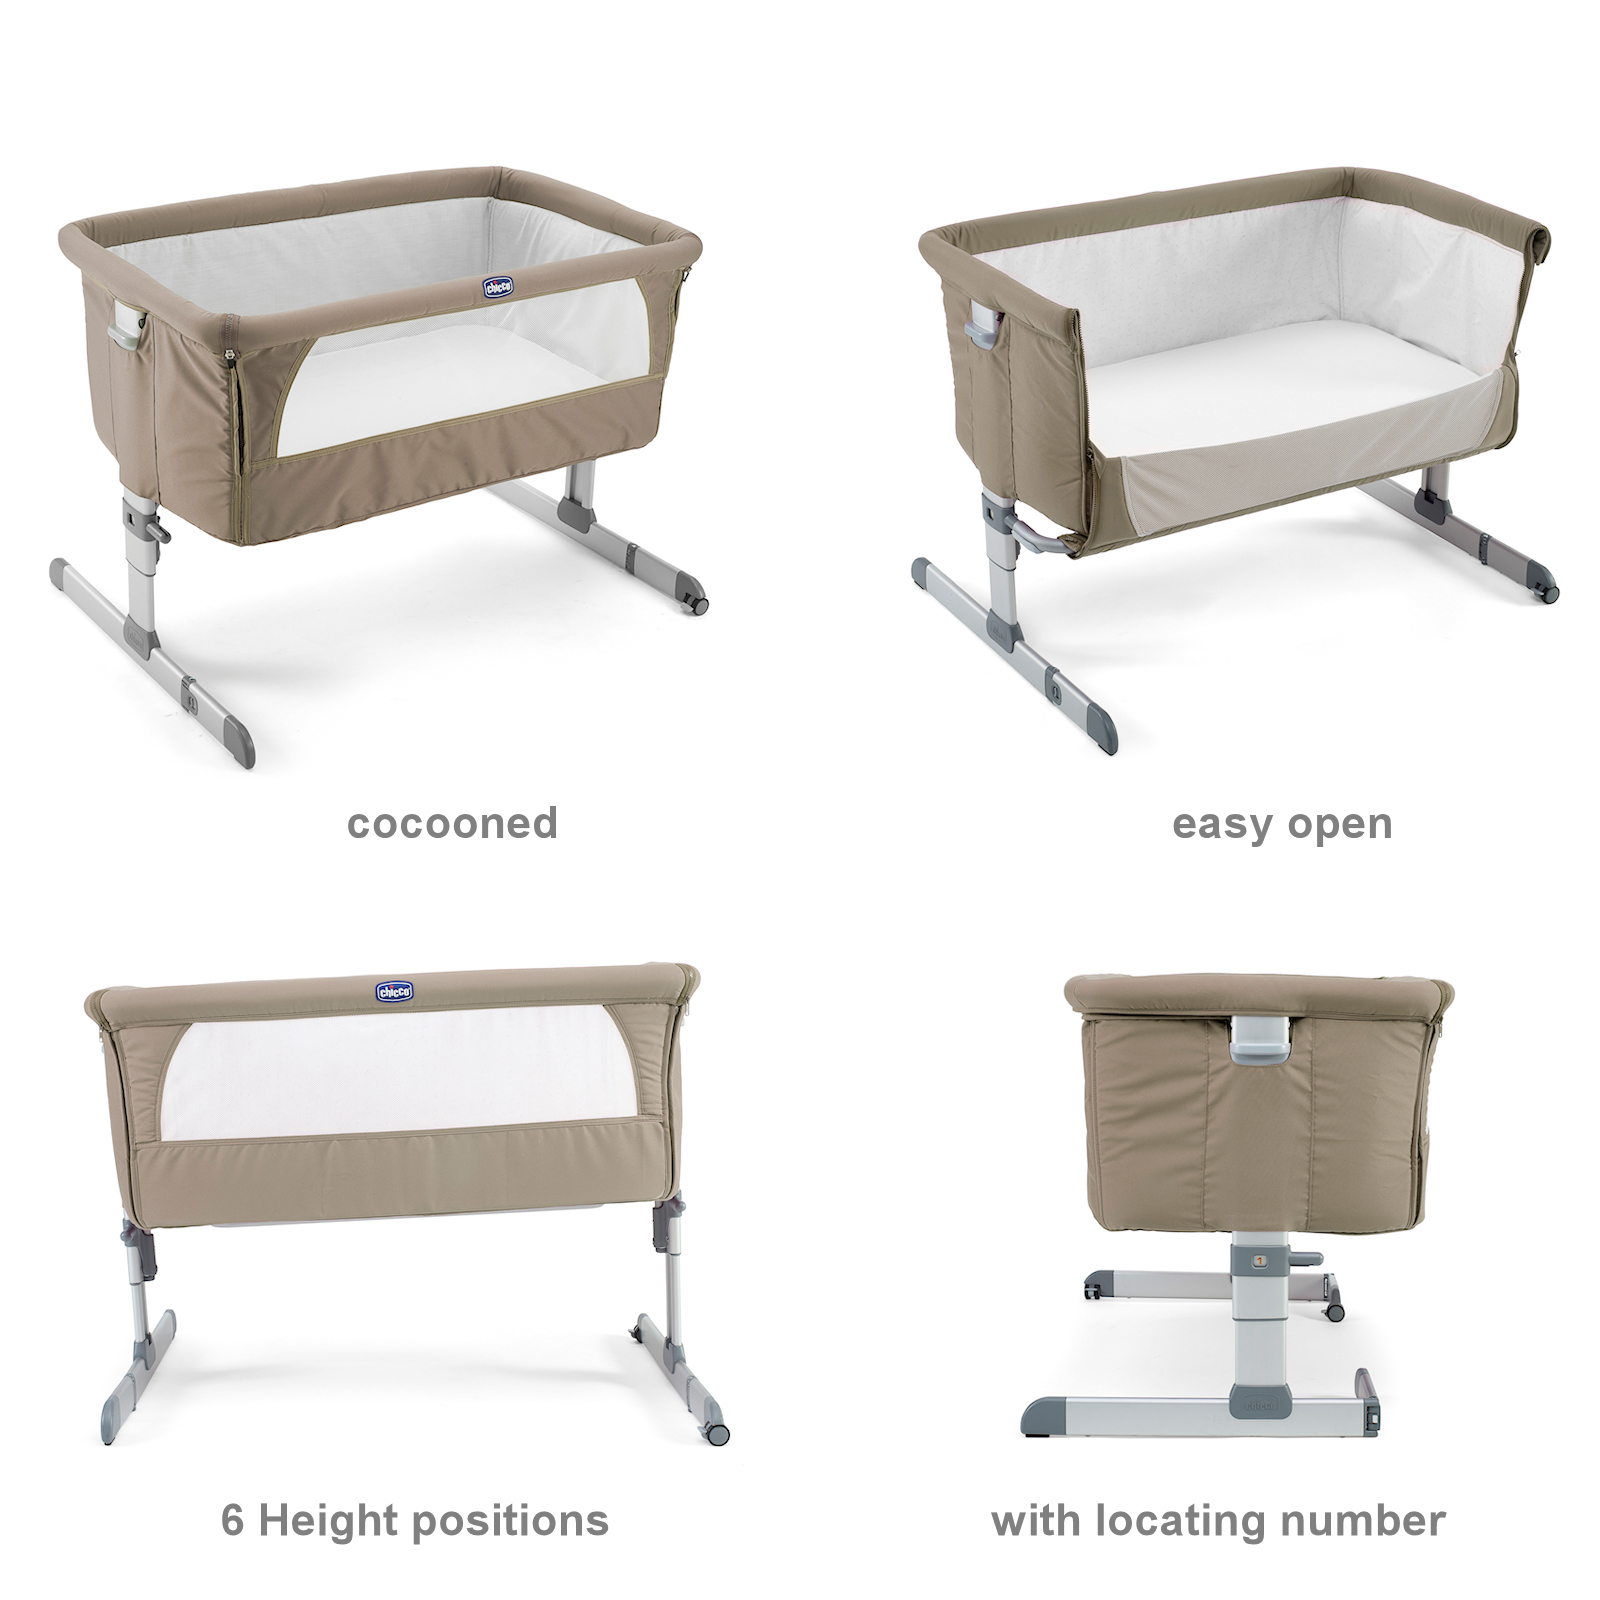 star black unisex collection girl grey to blue ddler cot colourful ways baby lemon dreams and white sheets crib next linen duvet quilt bedding cute bumper invincible bale can of pink small stars size you bed sweet set full sets make cribs nursery navy